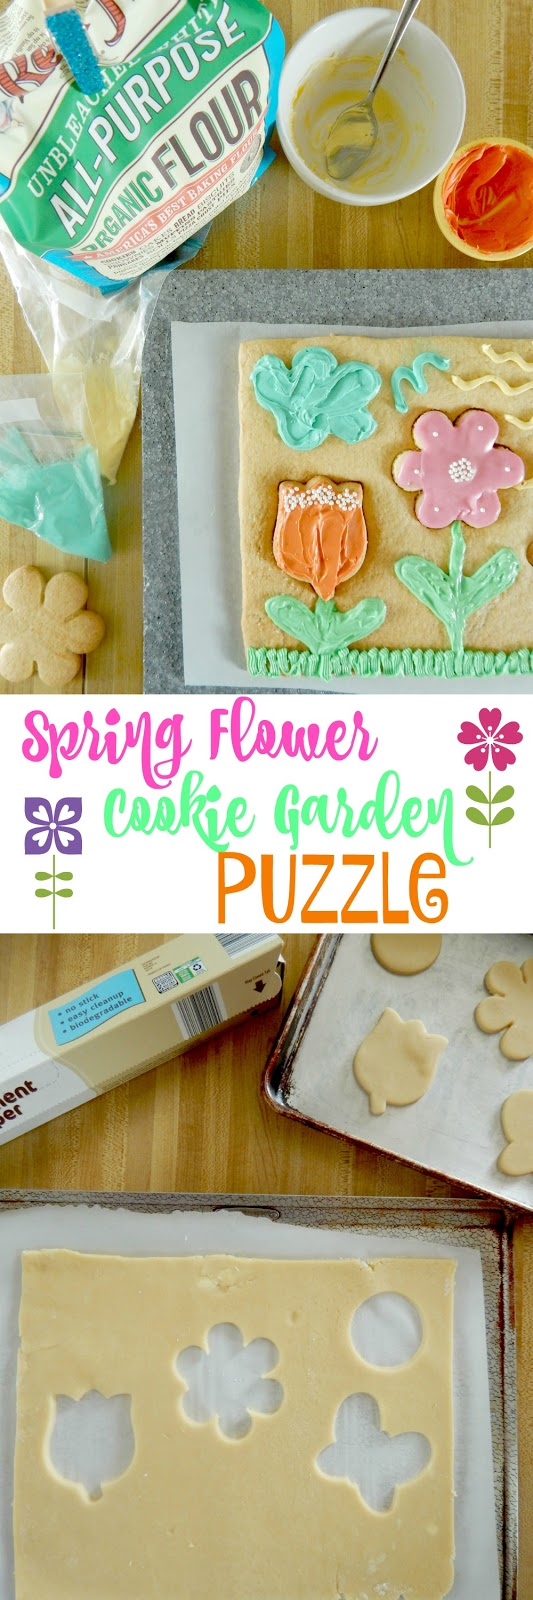 Ally's Sweet and Savory Eats: Spring Flower Cookie Garden ...